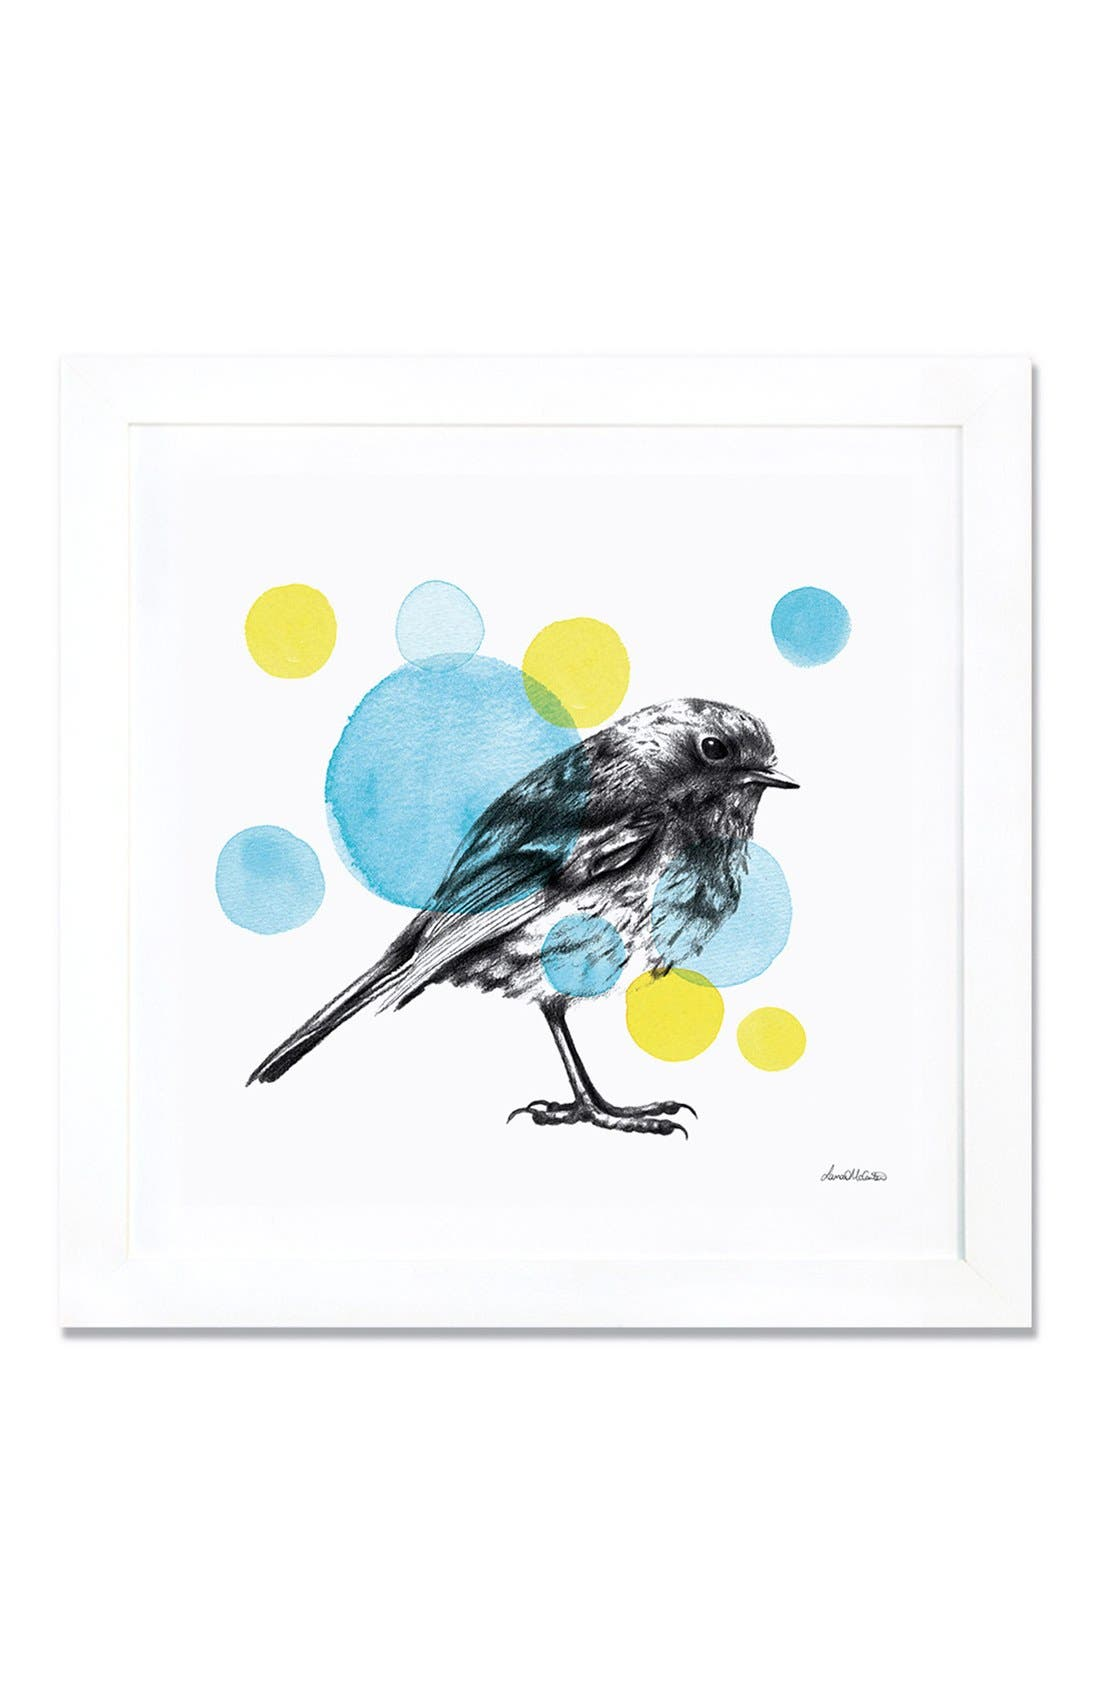 'Sketchbook - Bird' Giclée Print Framed Canvas Art,                             Main thumbnail 1, color,                             White